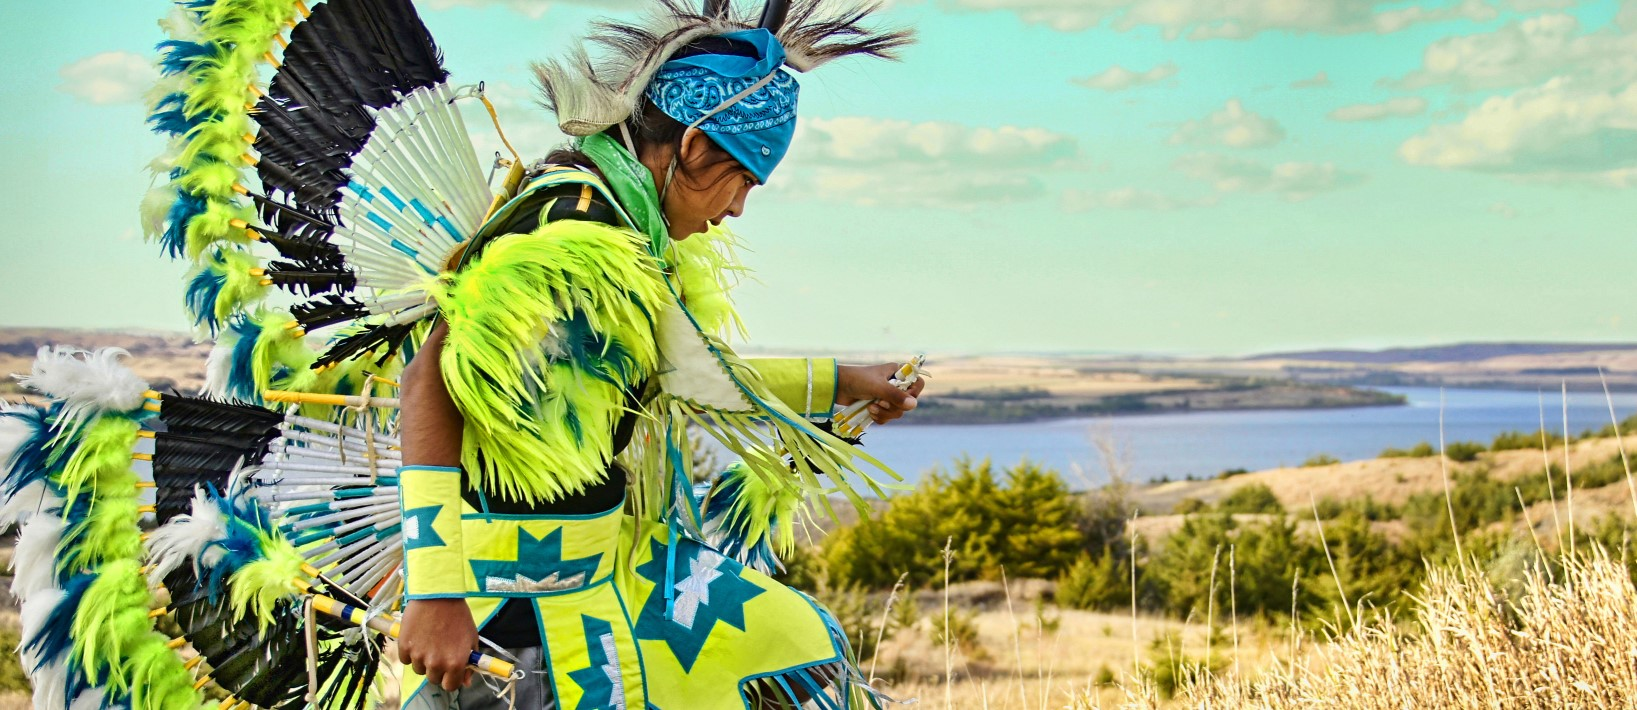 Treat the Earth Well: Native Americans Respond to DAPL News